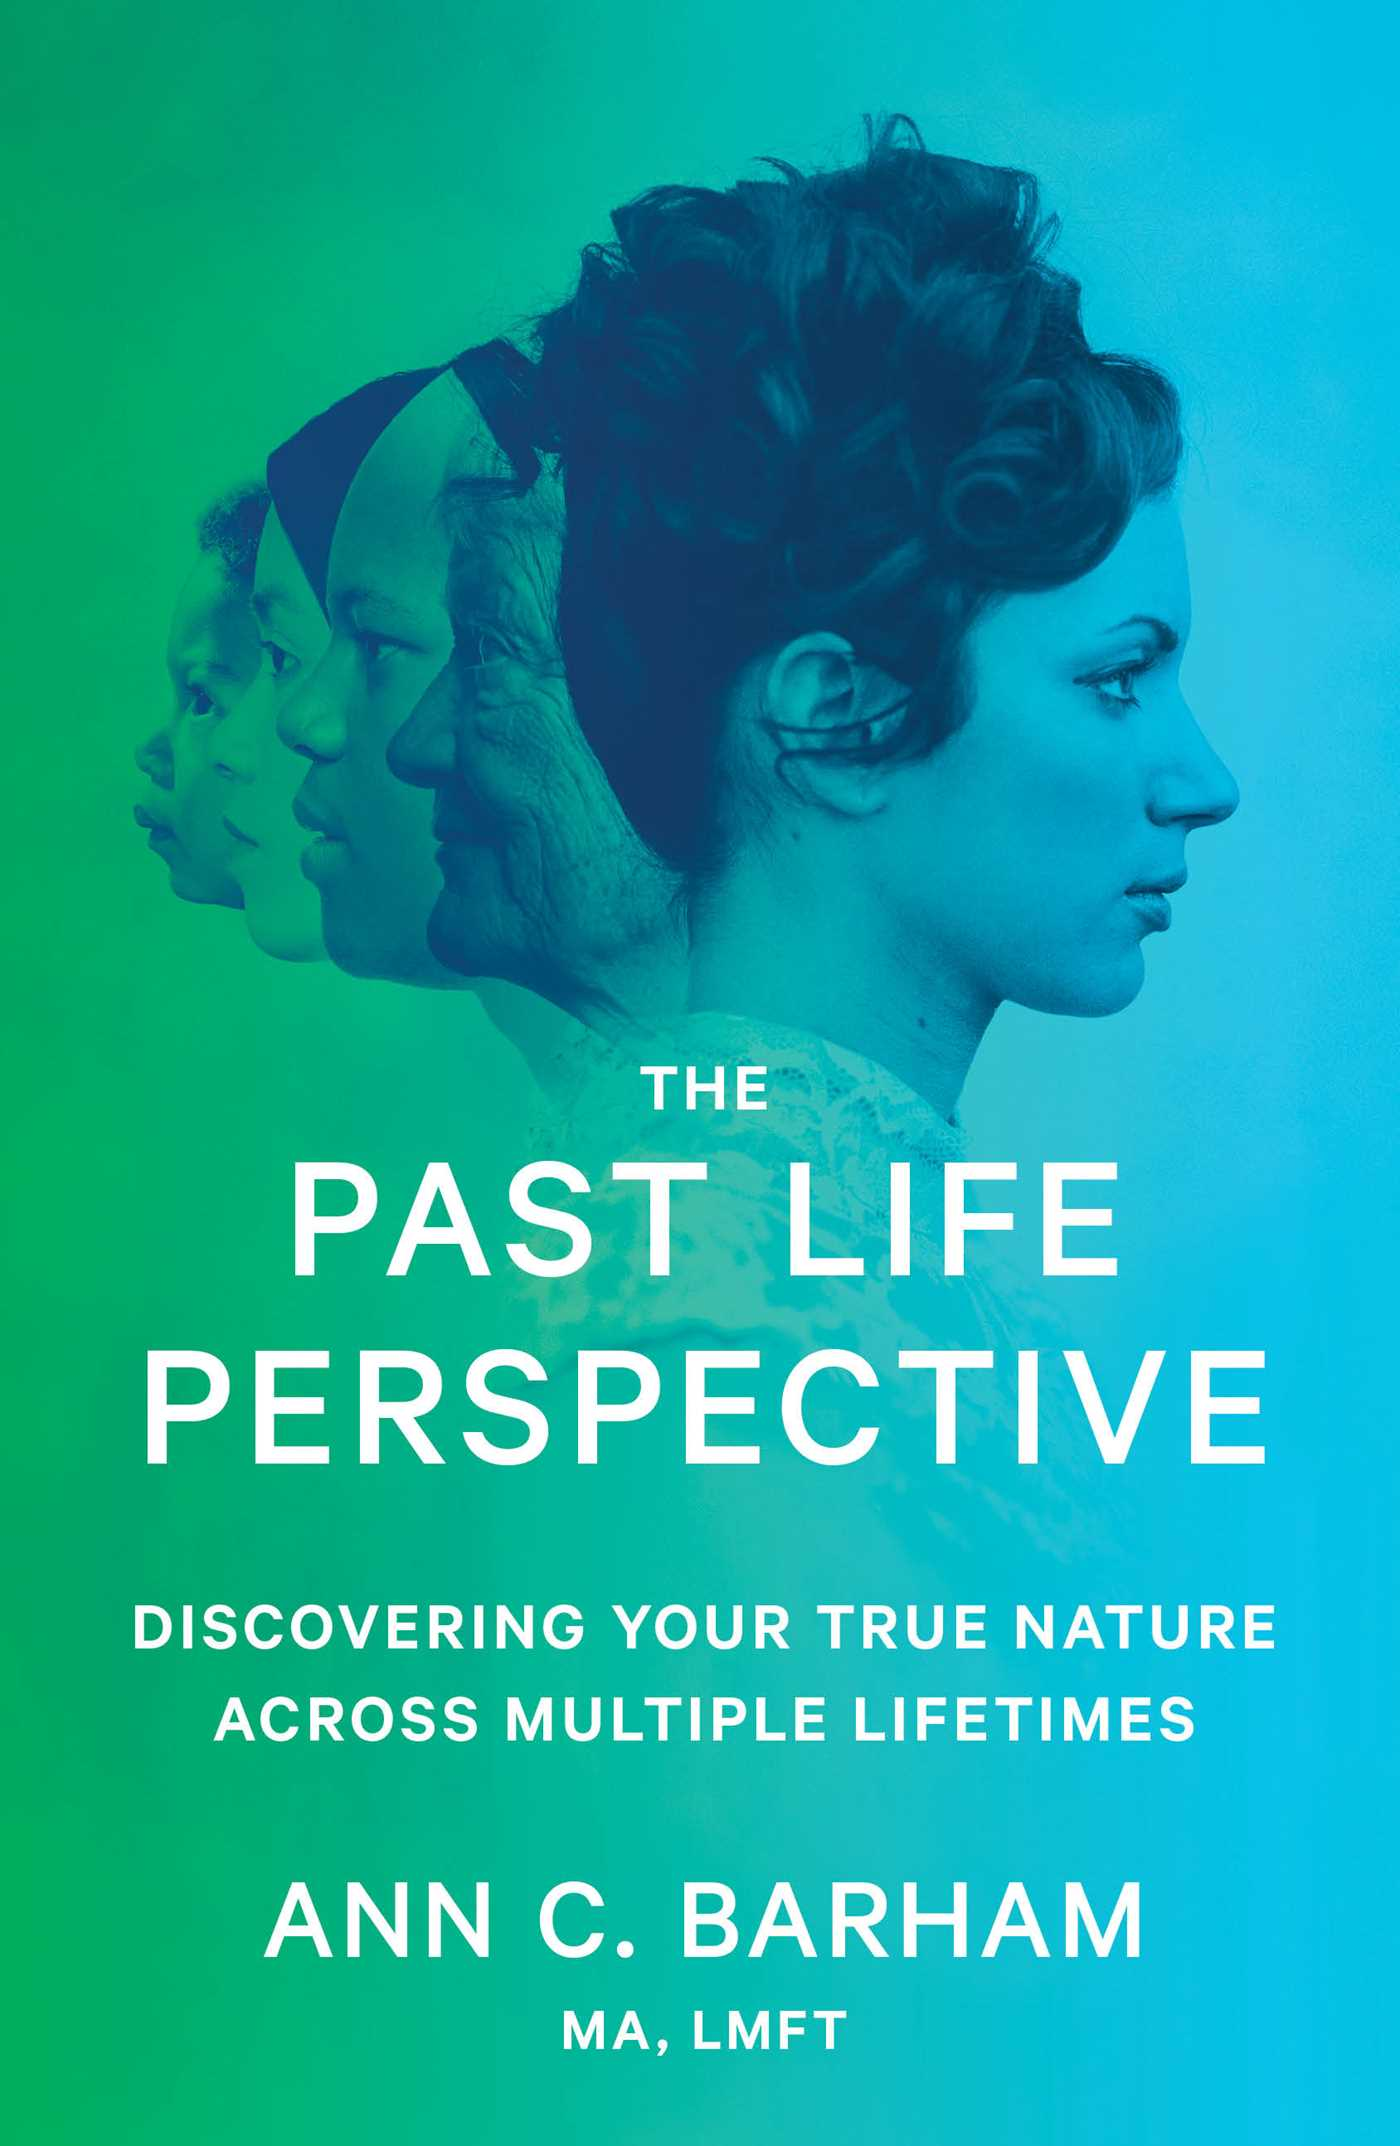 The past life perspective 9781501135736 hr